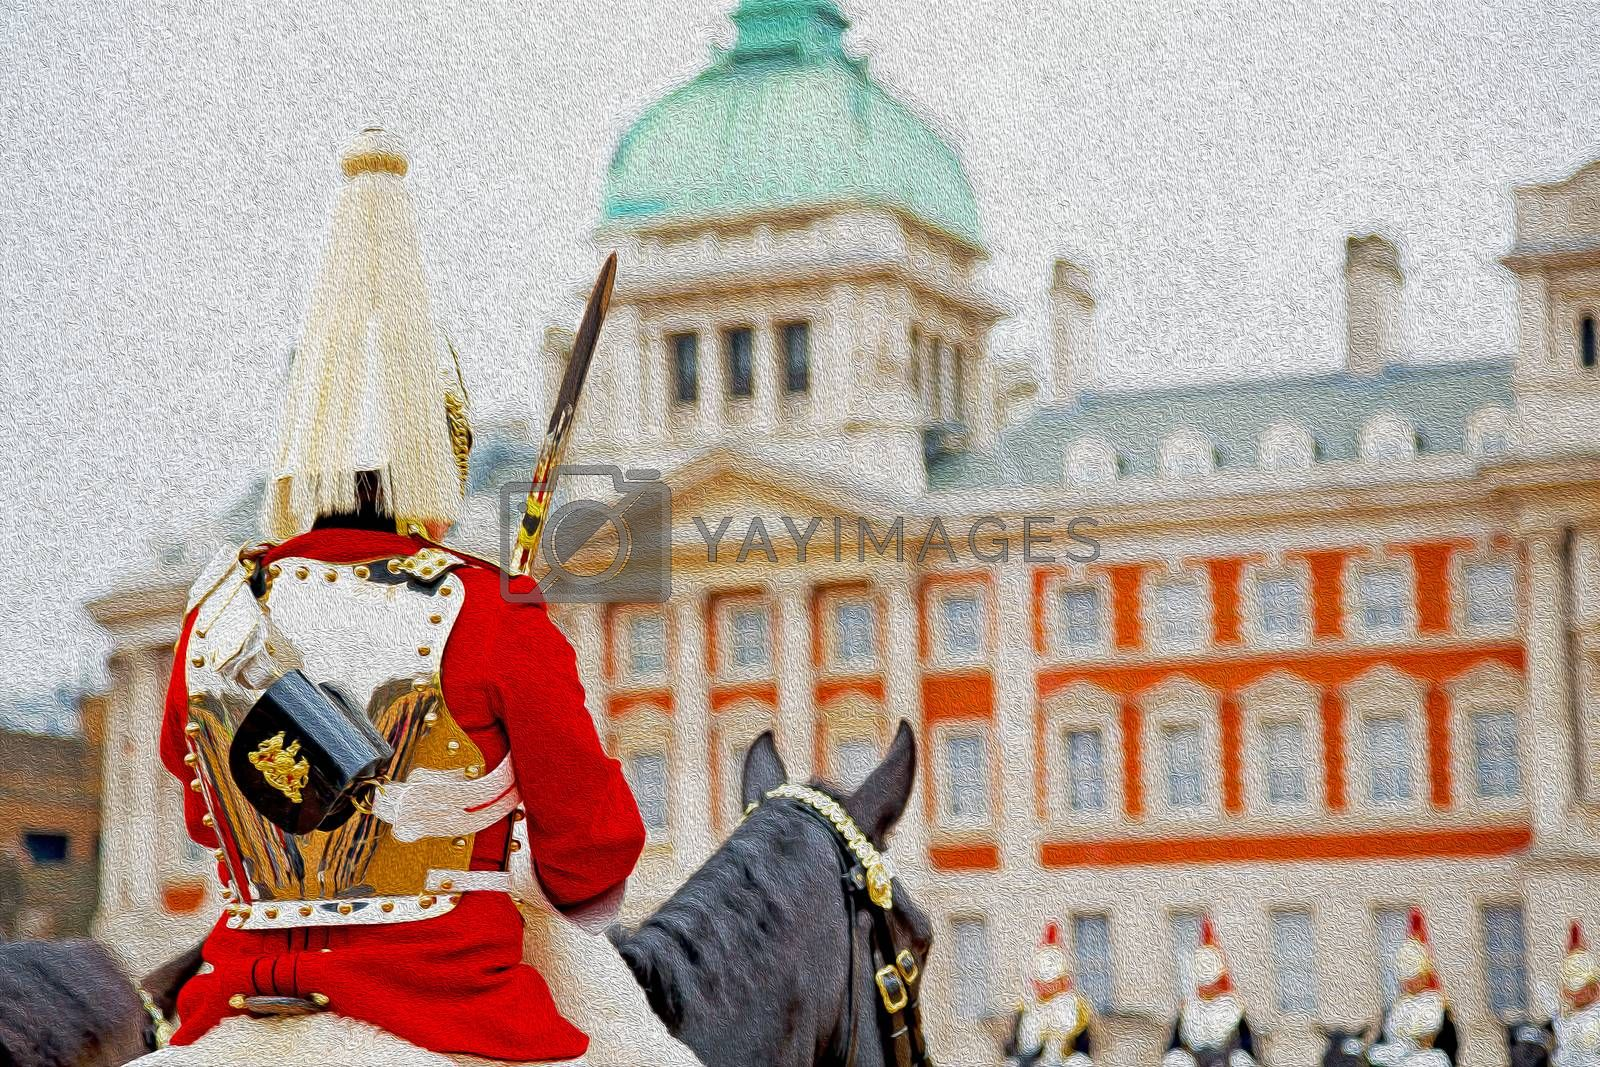 for    the queen in london england horse and cavalry  by lkpro